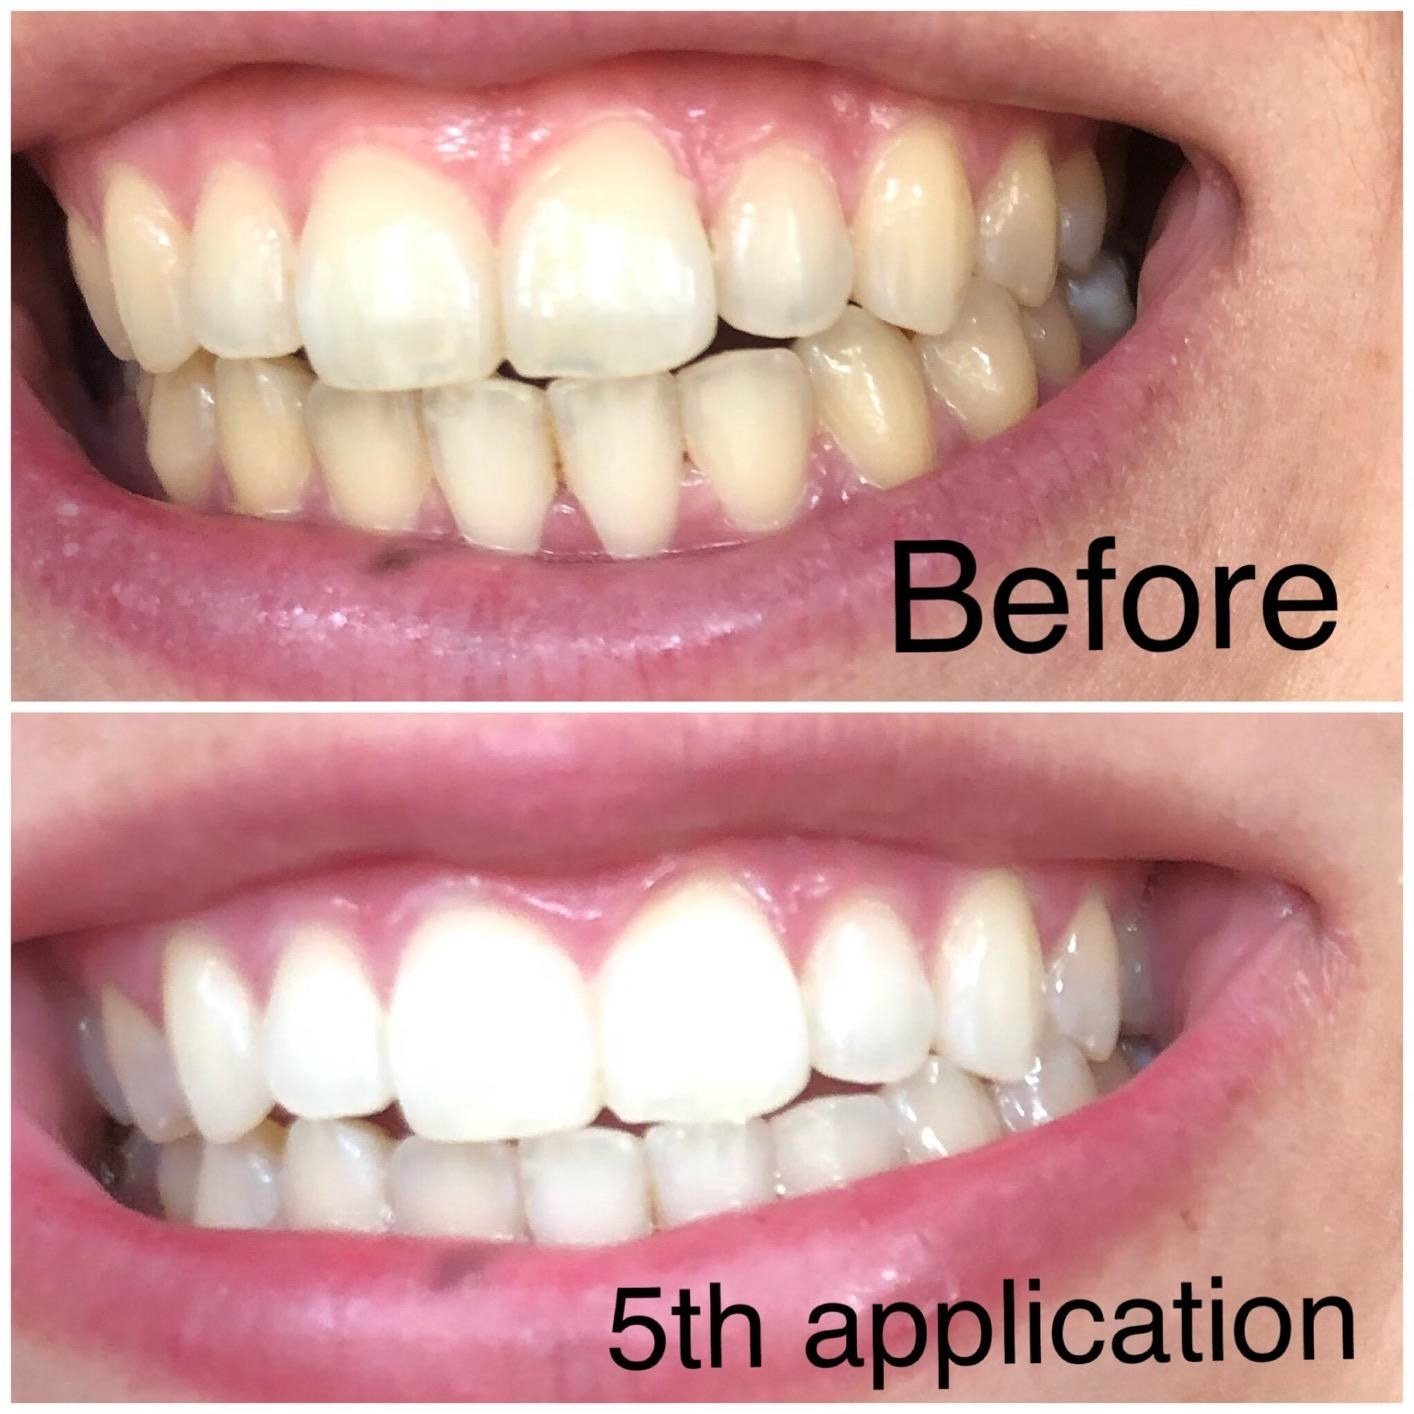 Reviewer photo showing before-and-after results of using LED teeth whitening kit